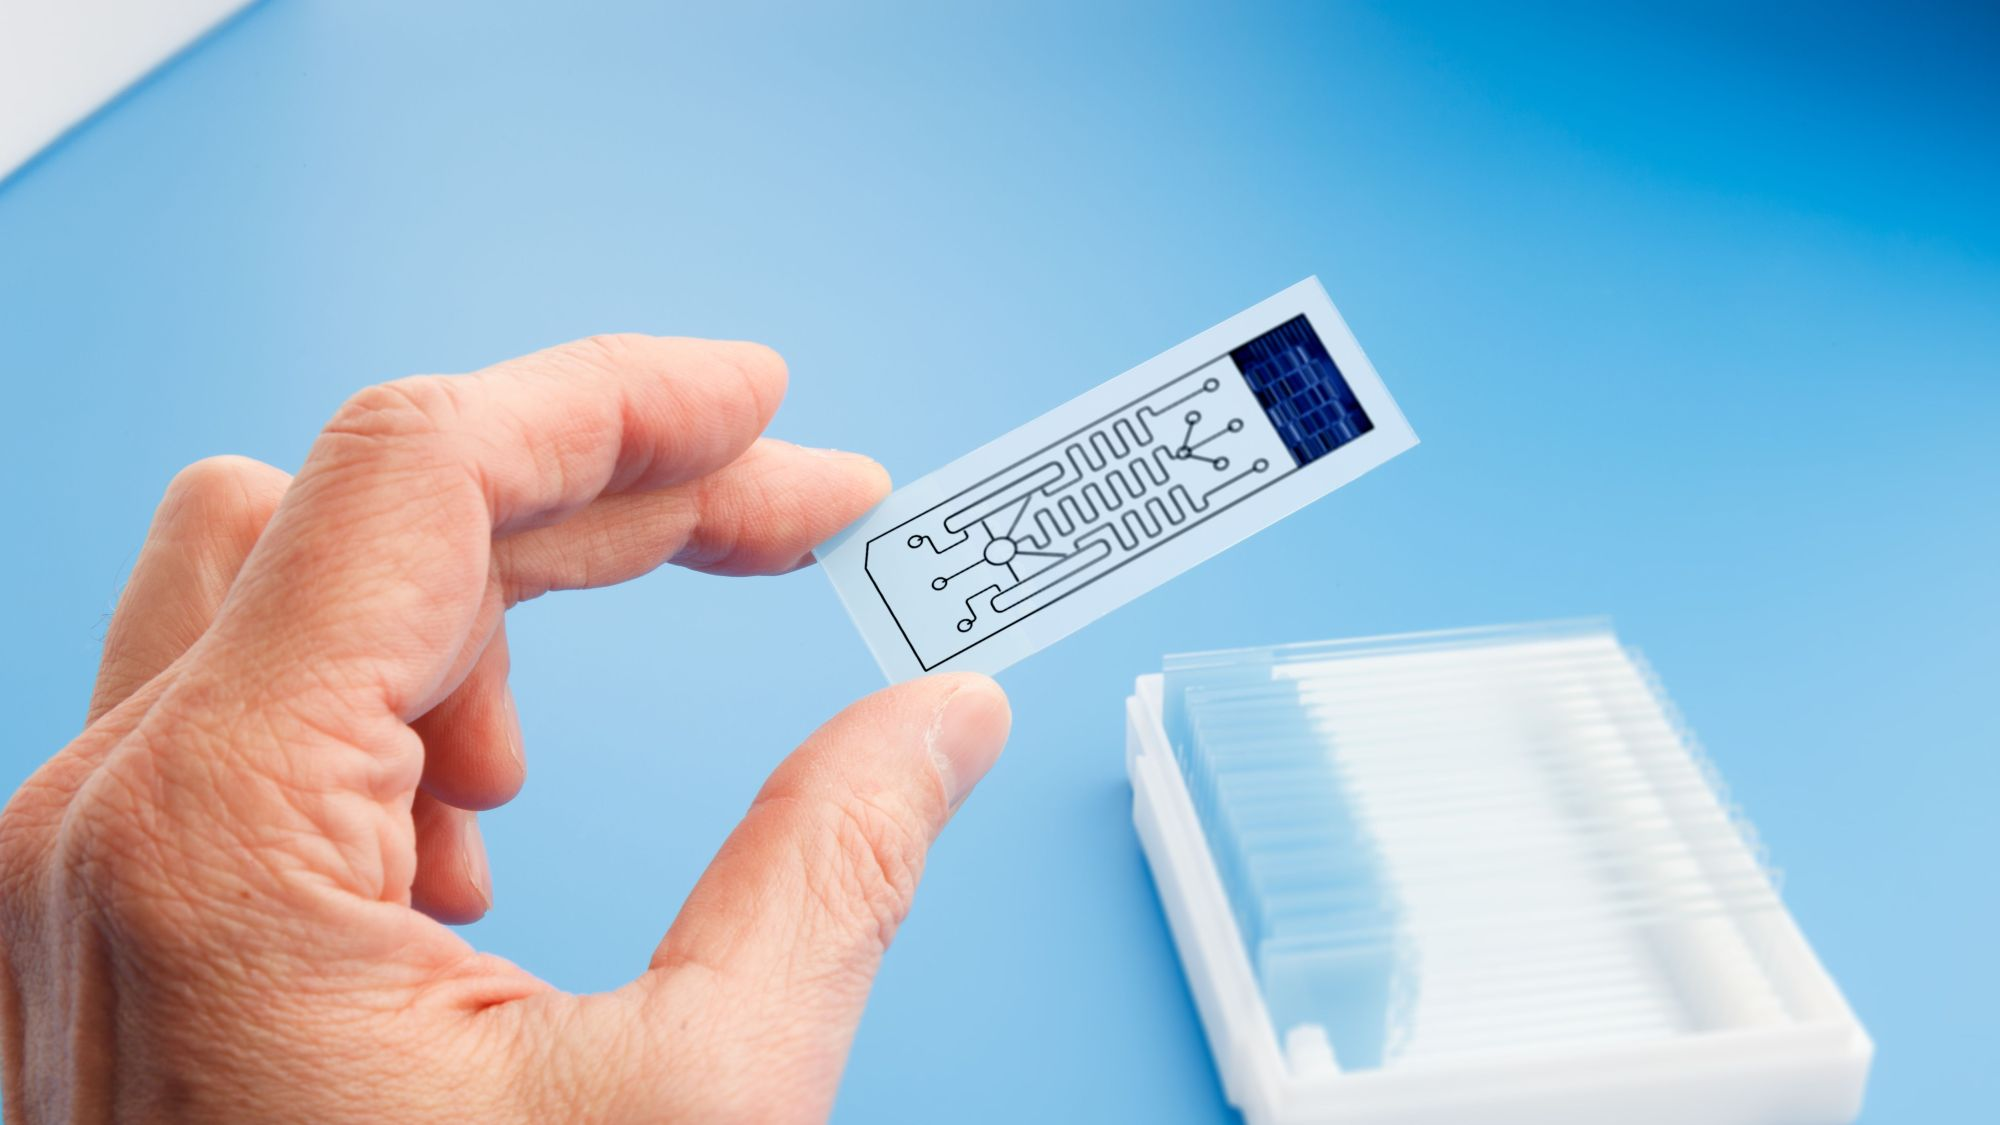 3 Reasons Why Microfluidics is the Future of Medical Diagnostics